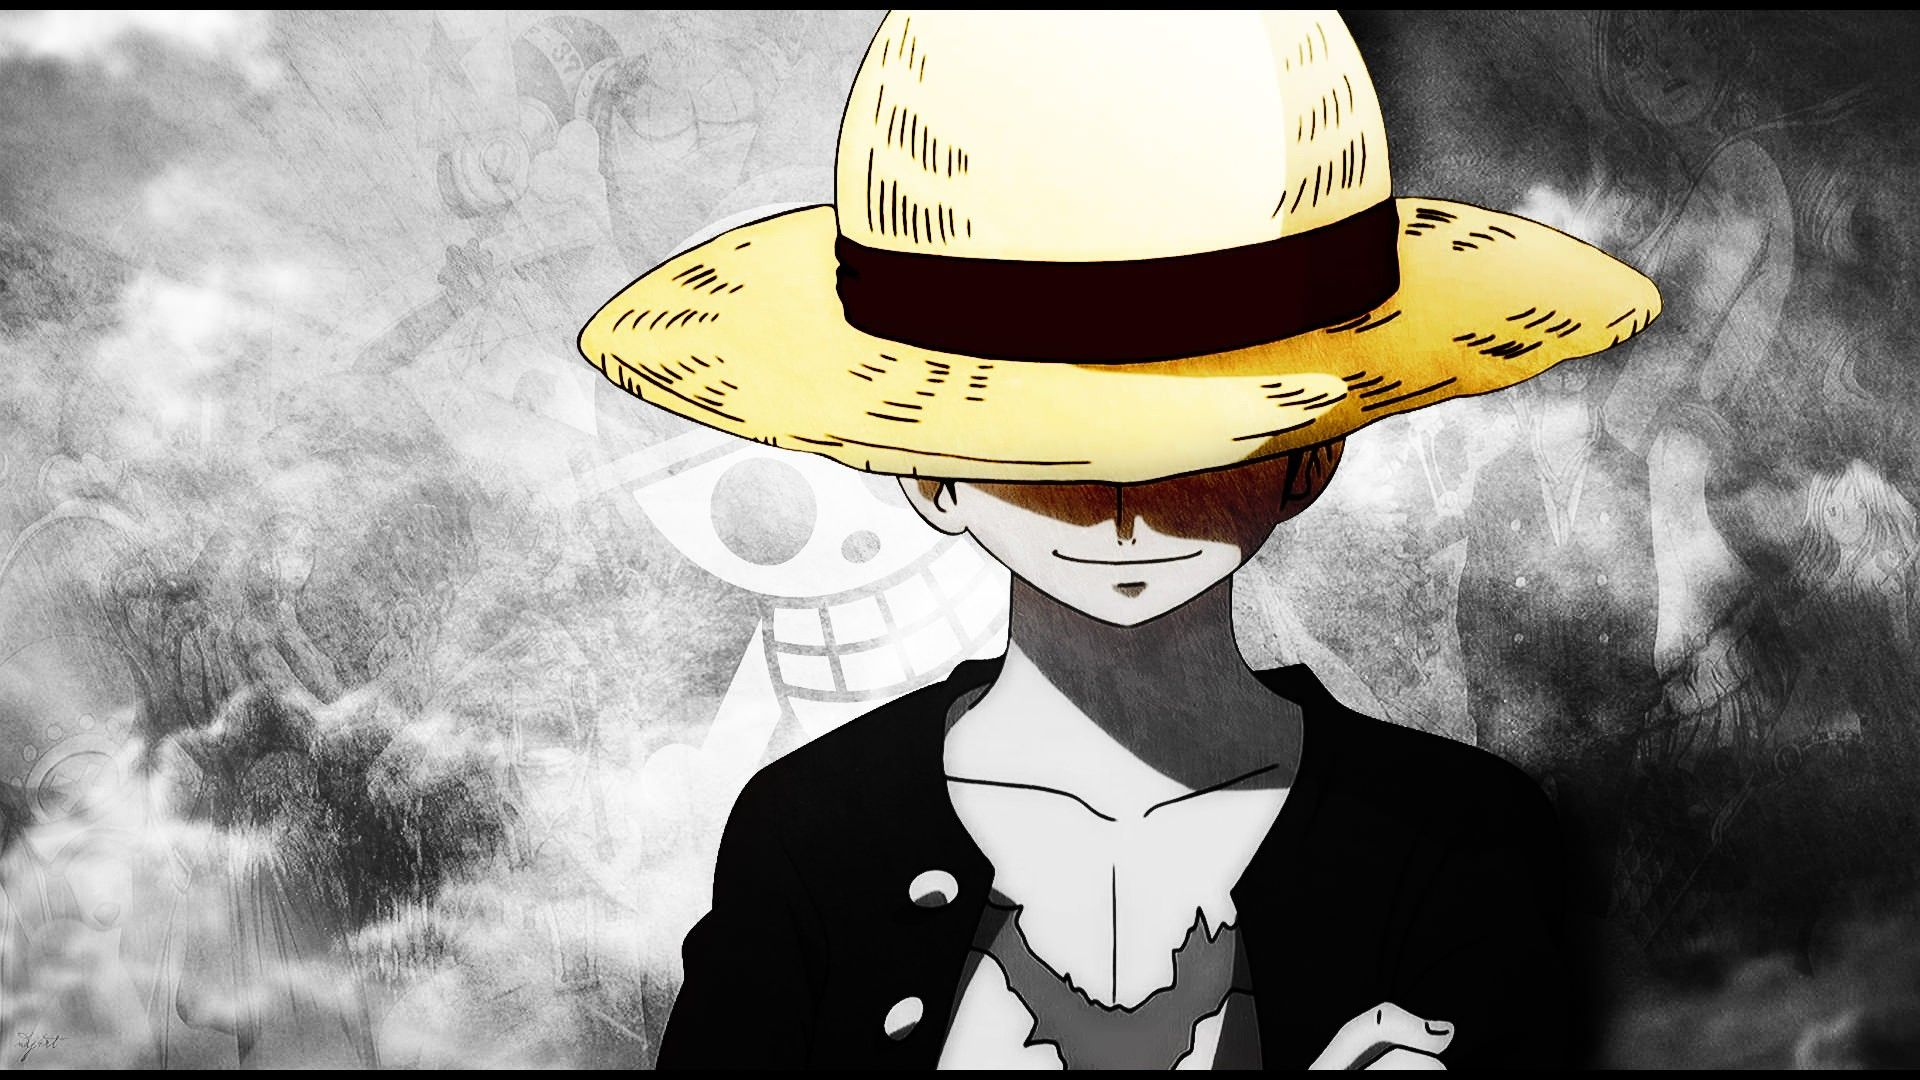 One Piece Luffy Wallpaper On Wallpaper 1080p Hd Gambar Gambar Manga Roronoa Zoro